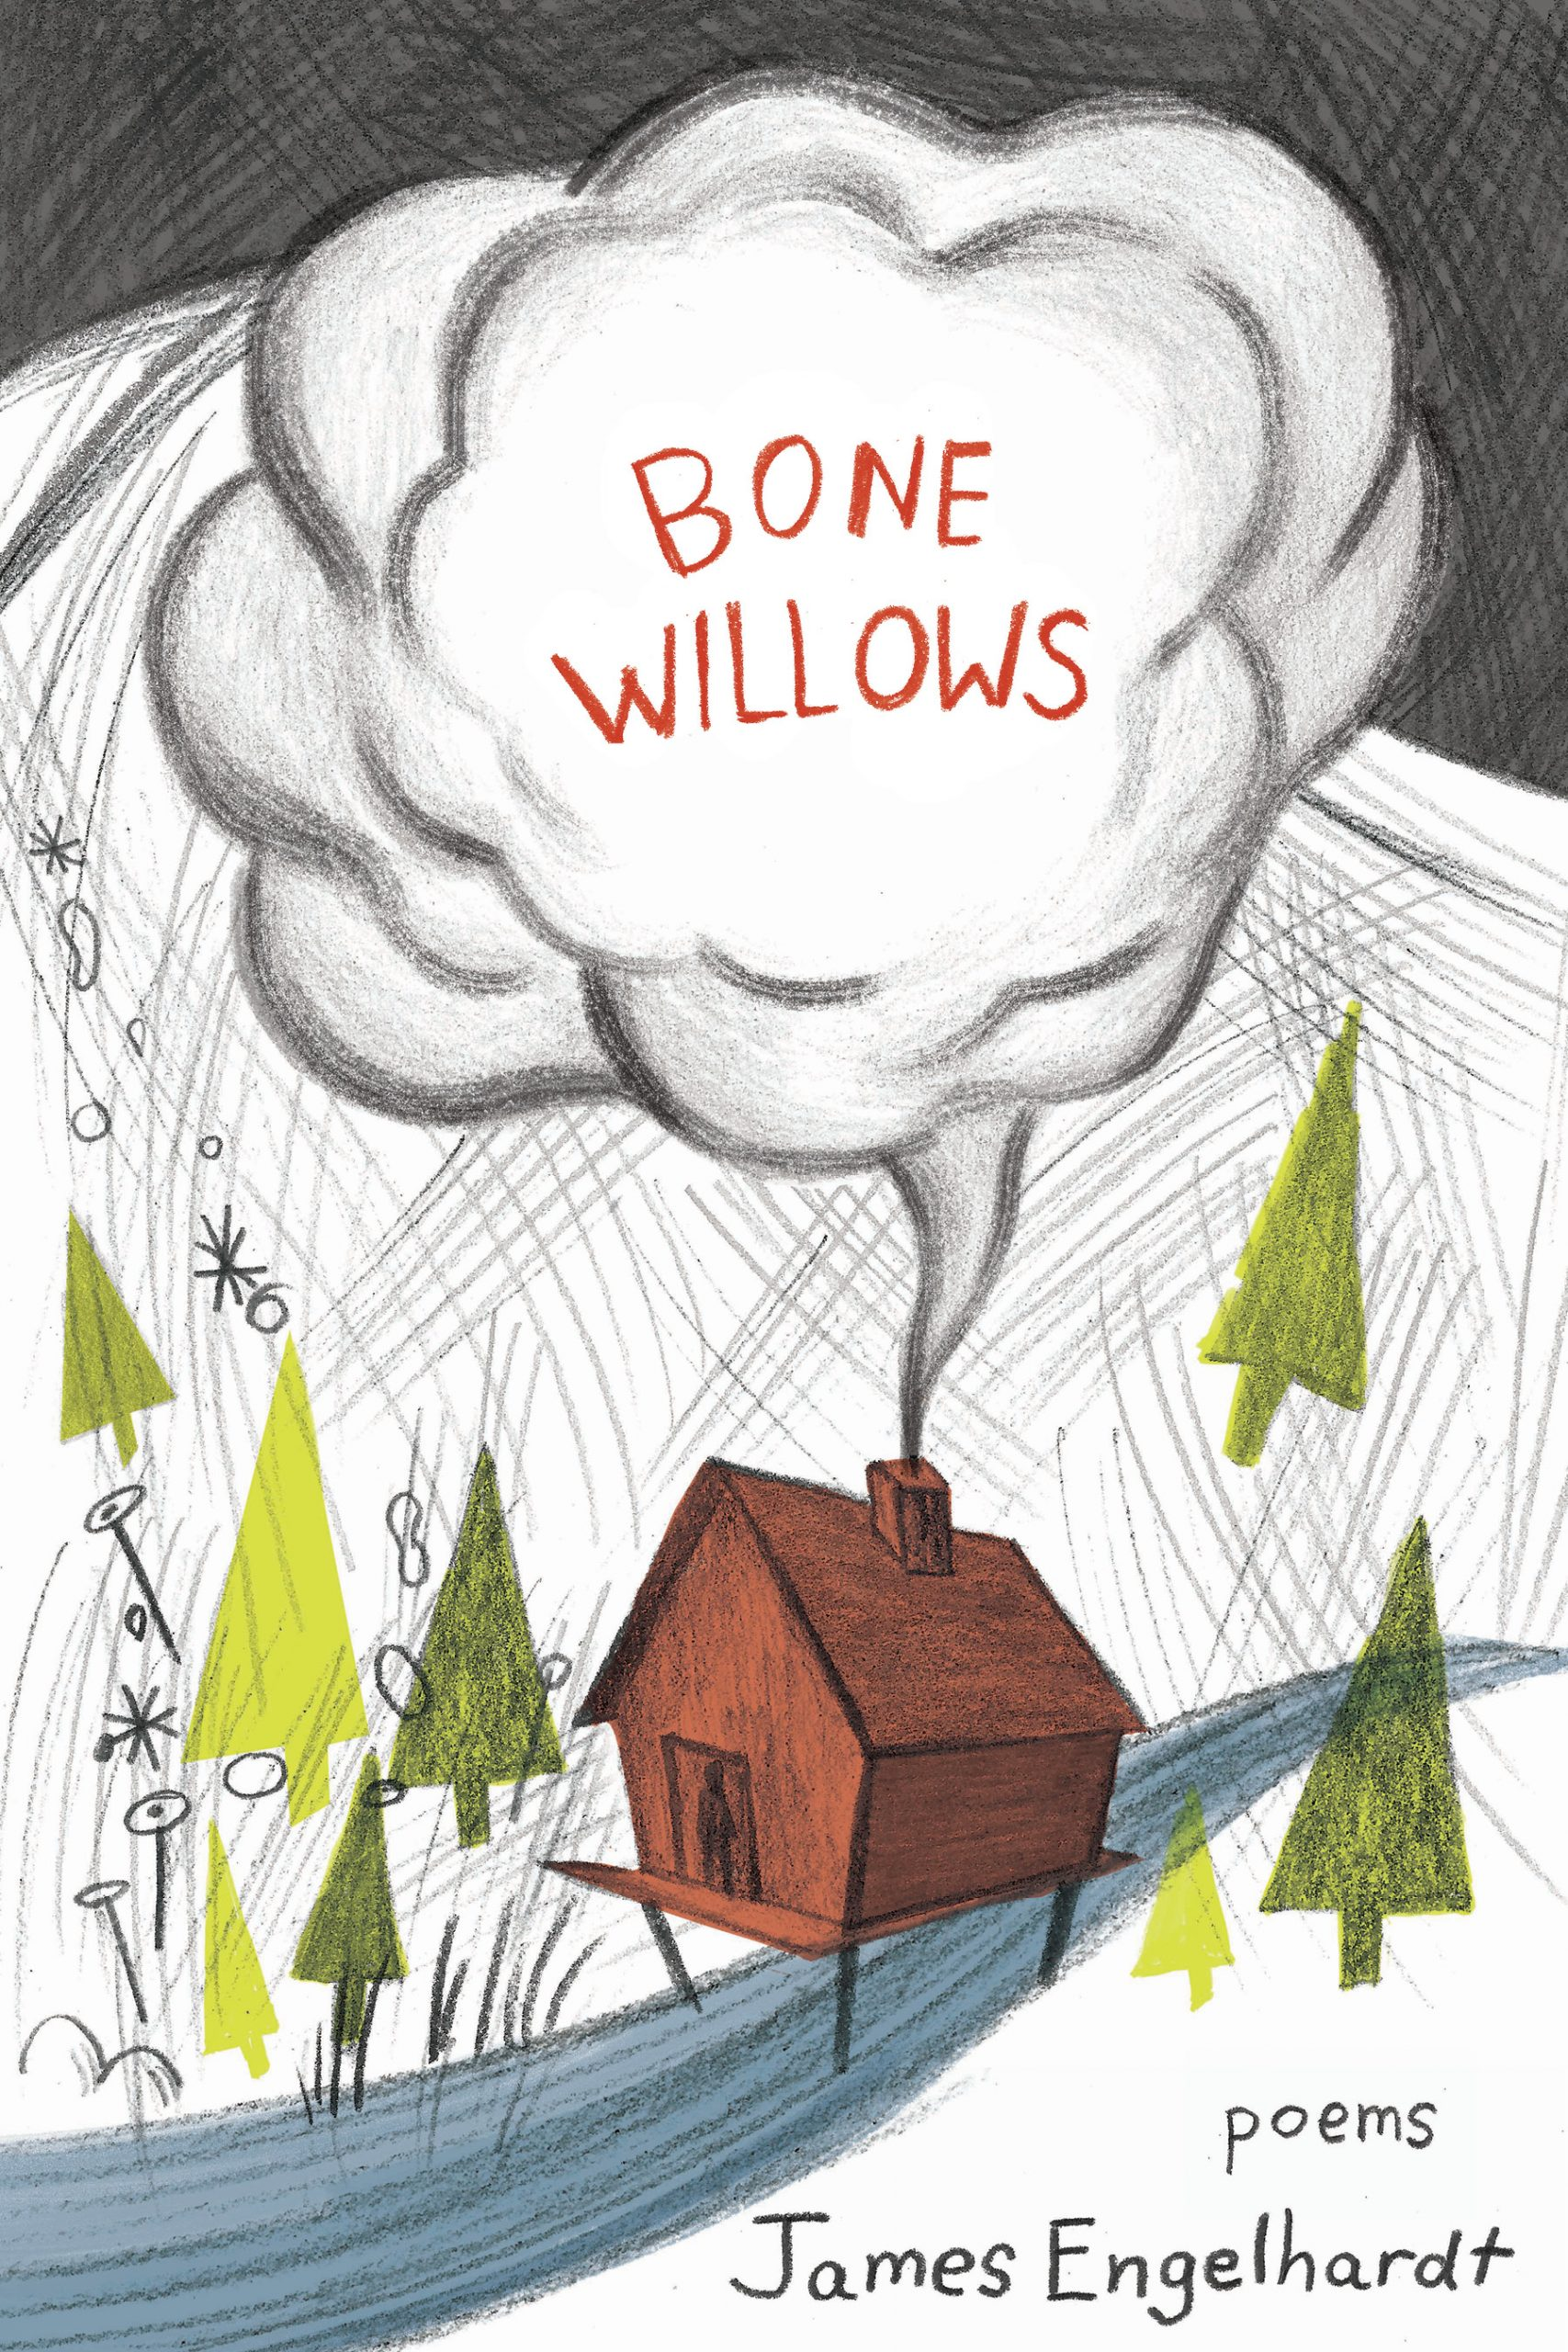 A colorful sketch of a red house blowing smoke out of its chimney in the middle of the woods with script that reads Bone Willows poems by James Engelhardt.